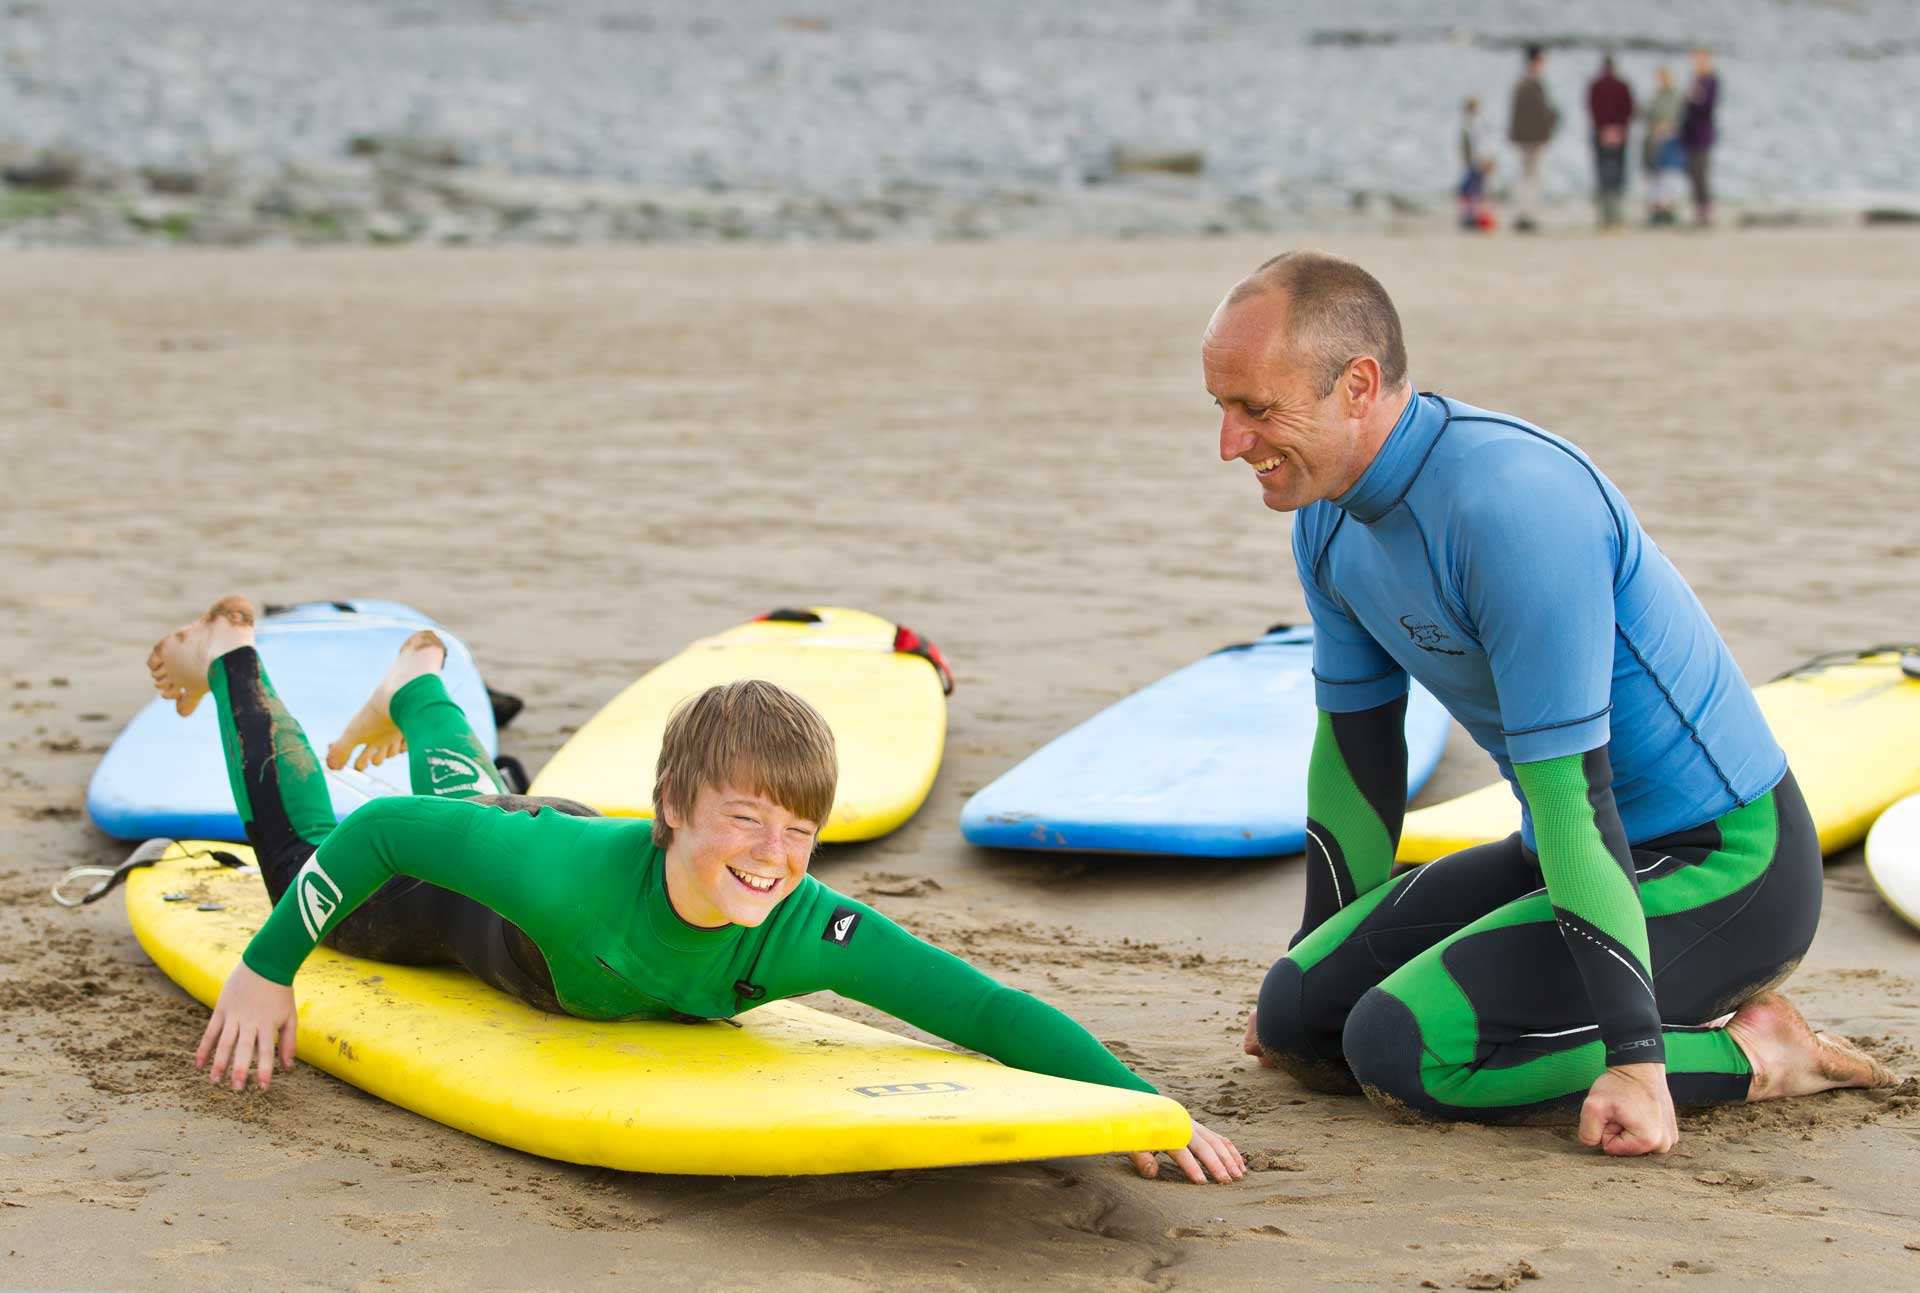 Surfing instructor teaching a boy how to surf